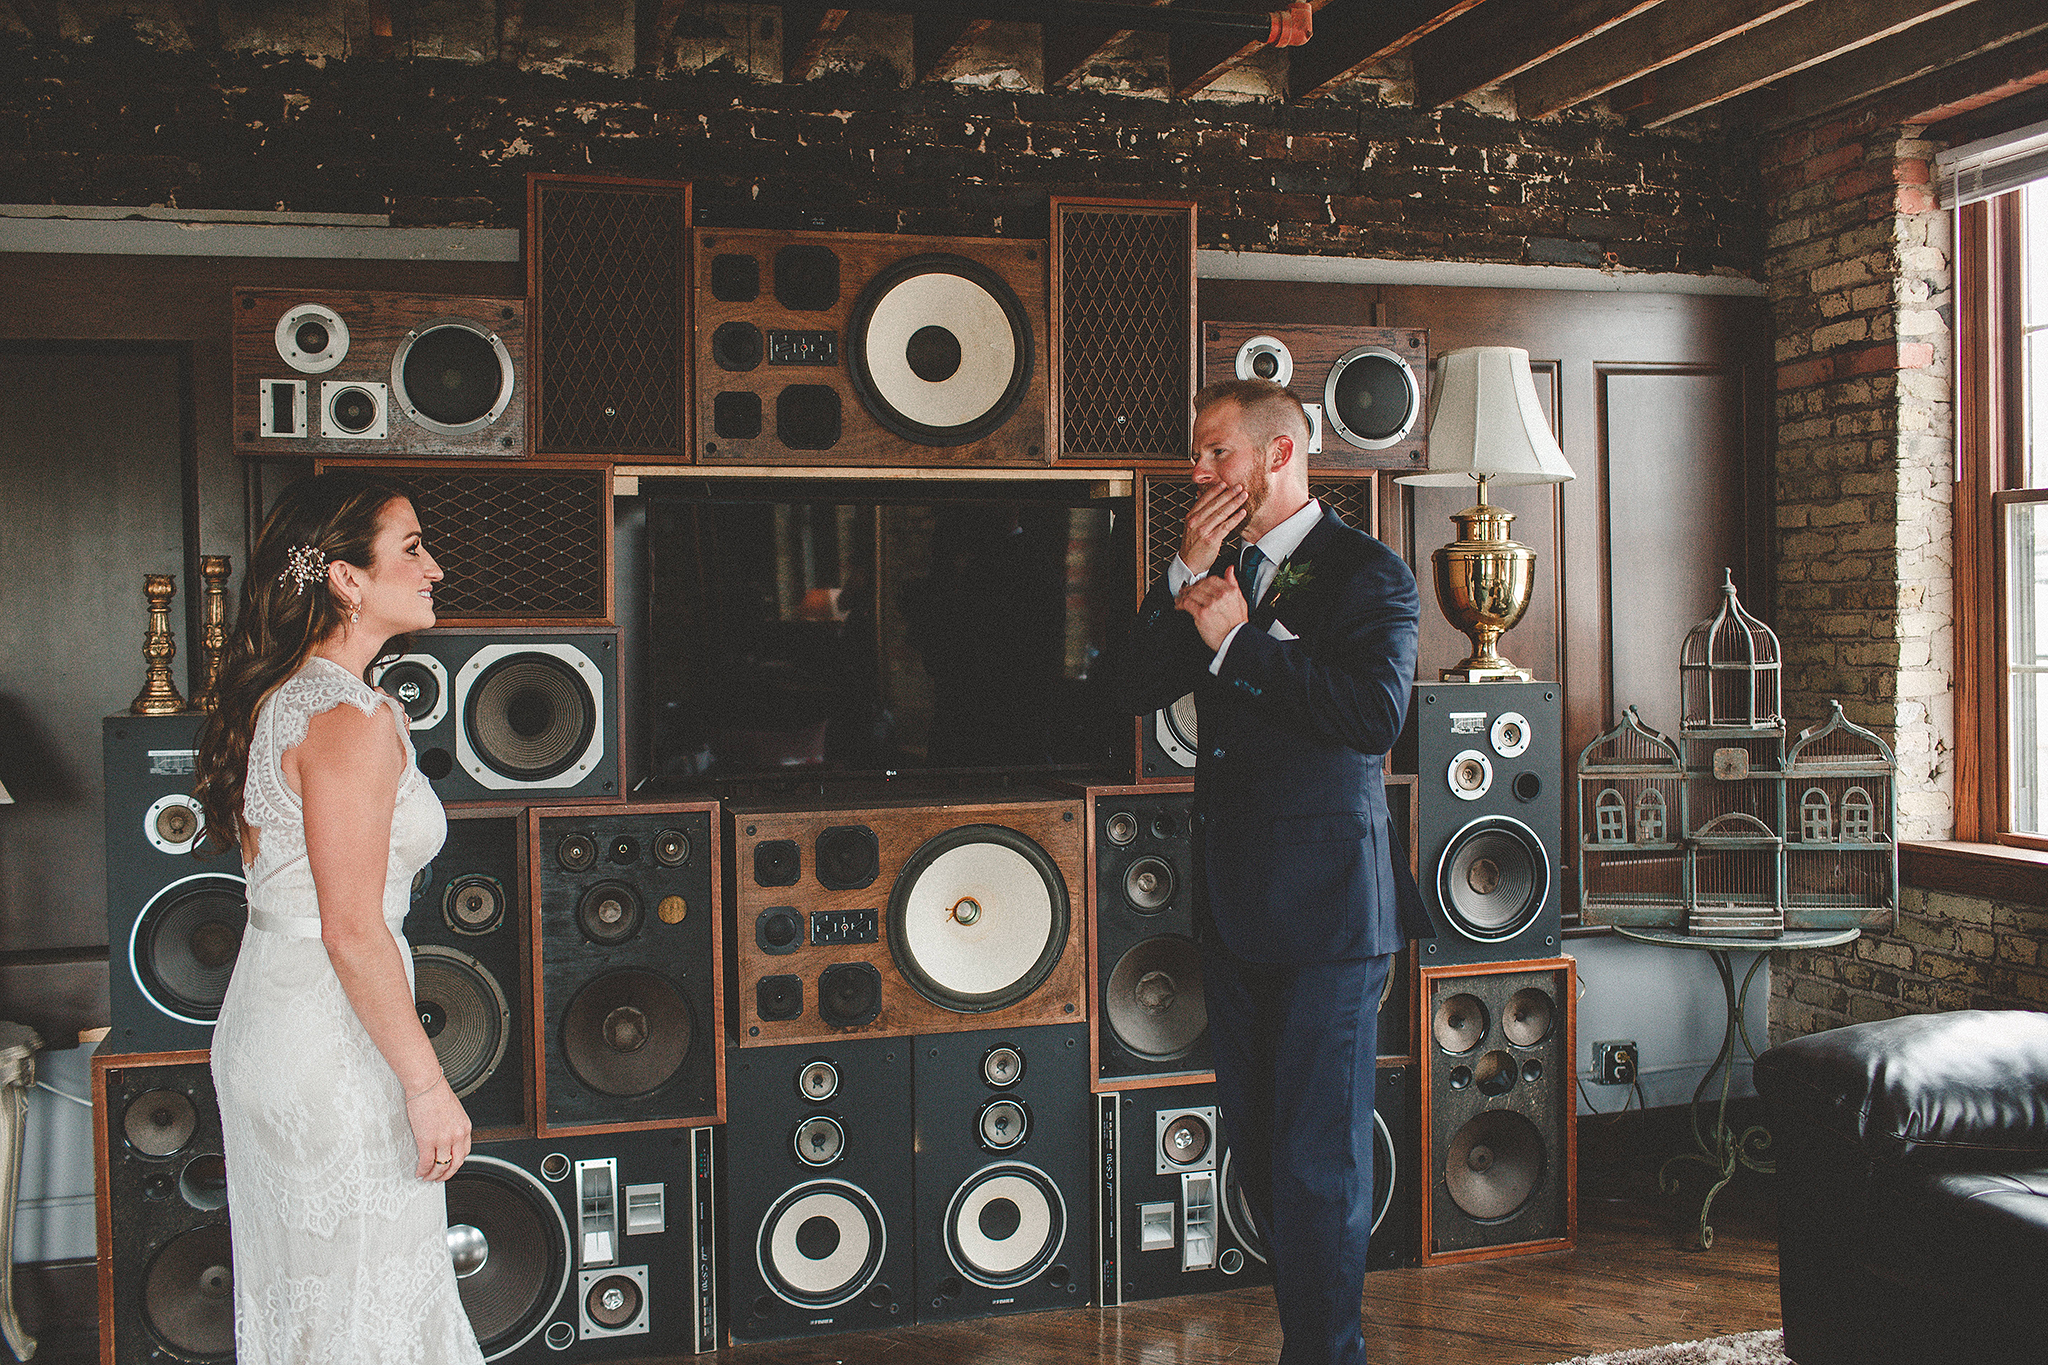 bride and groom first look | the ivy house milwaukee wedding photographer | chrissy deming photography